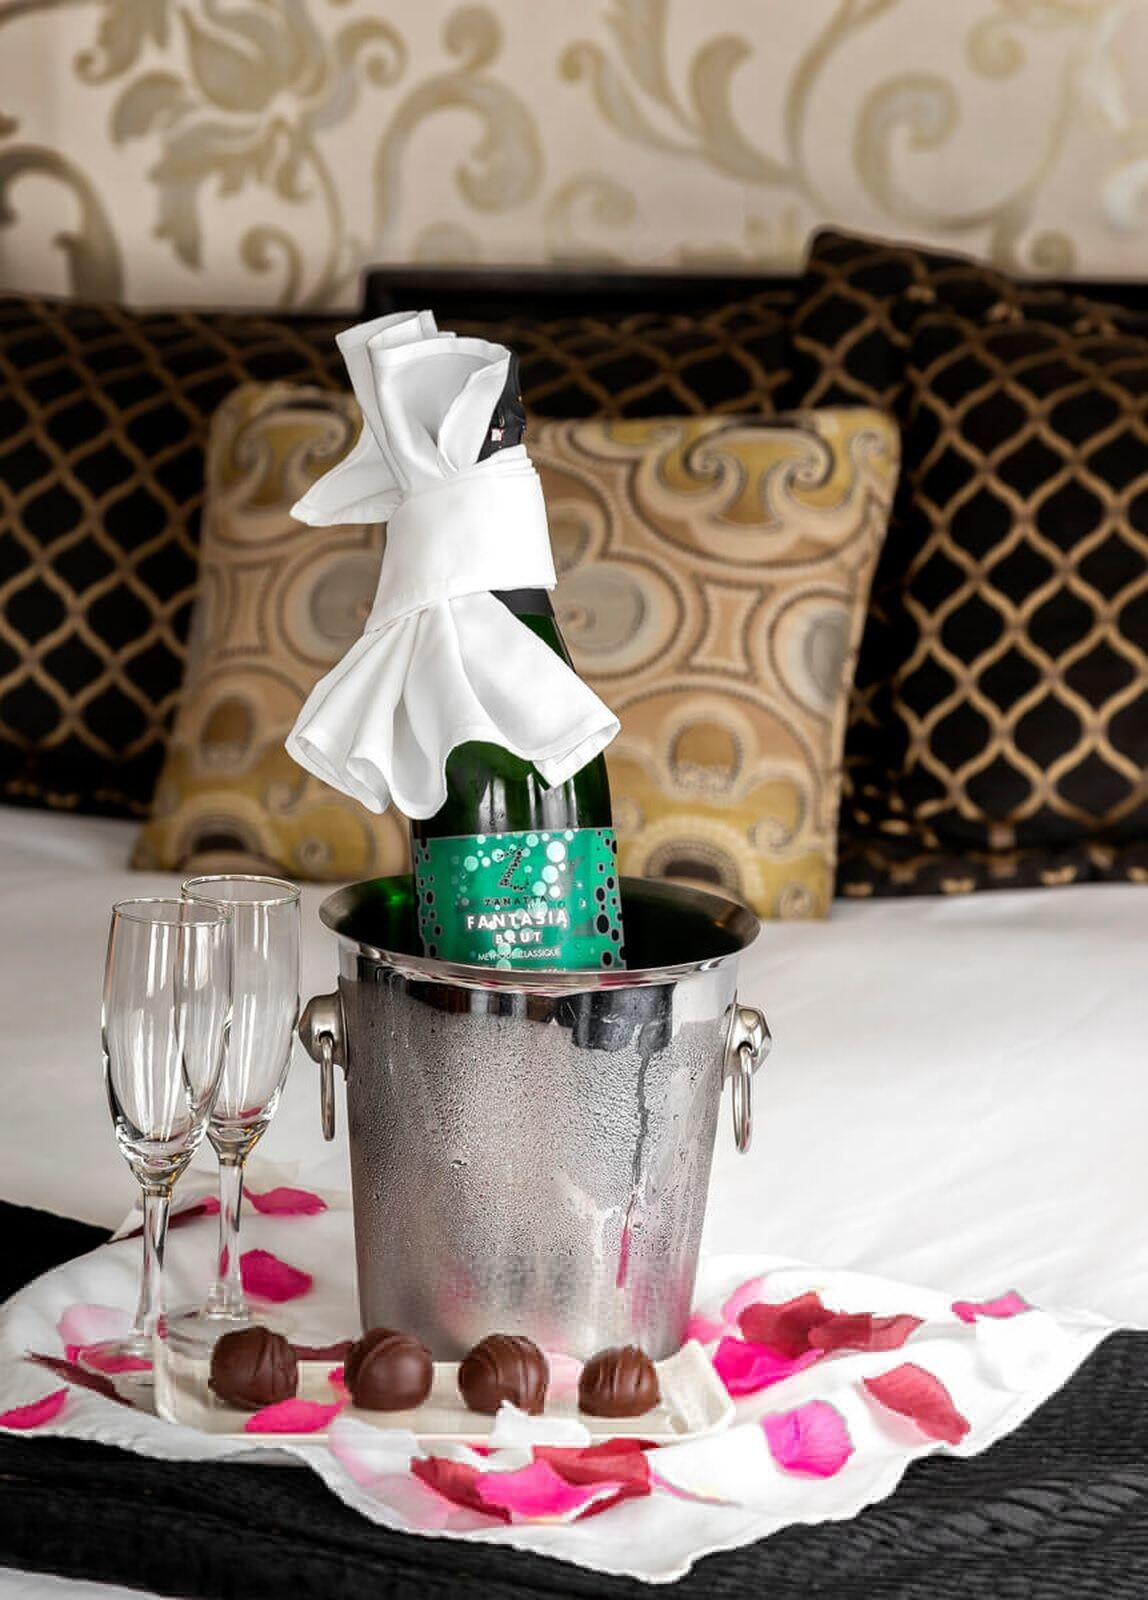 Bottle of champagne in ice bucket with two glasses and chocolate